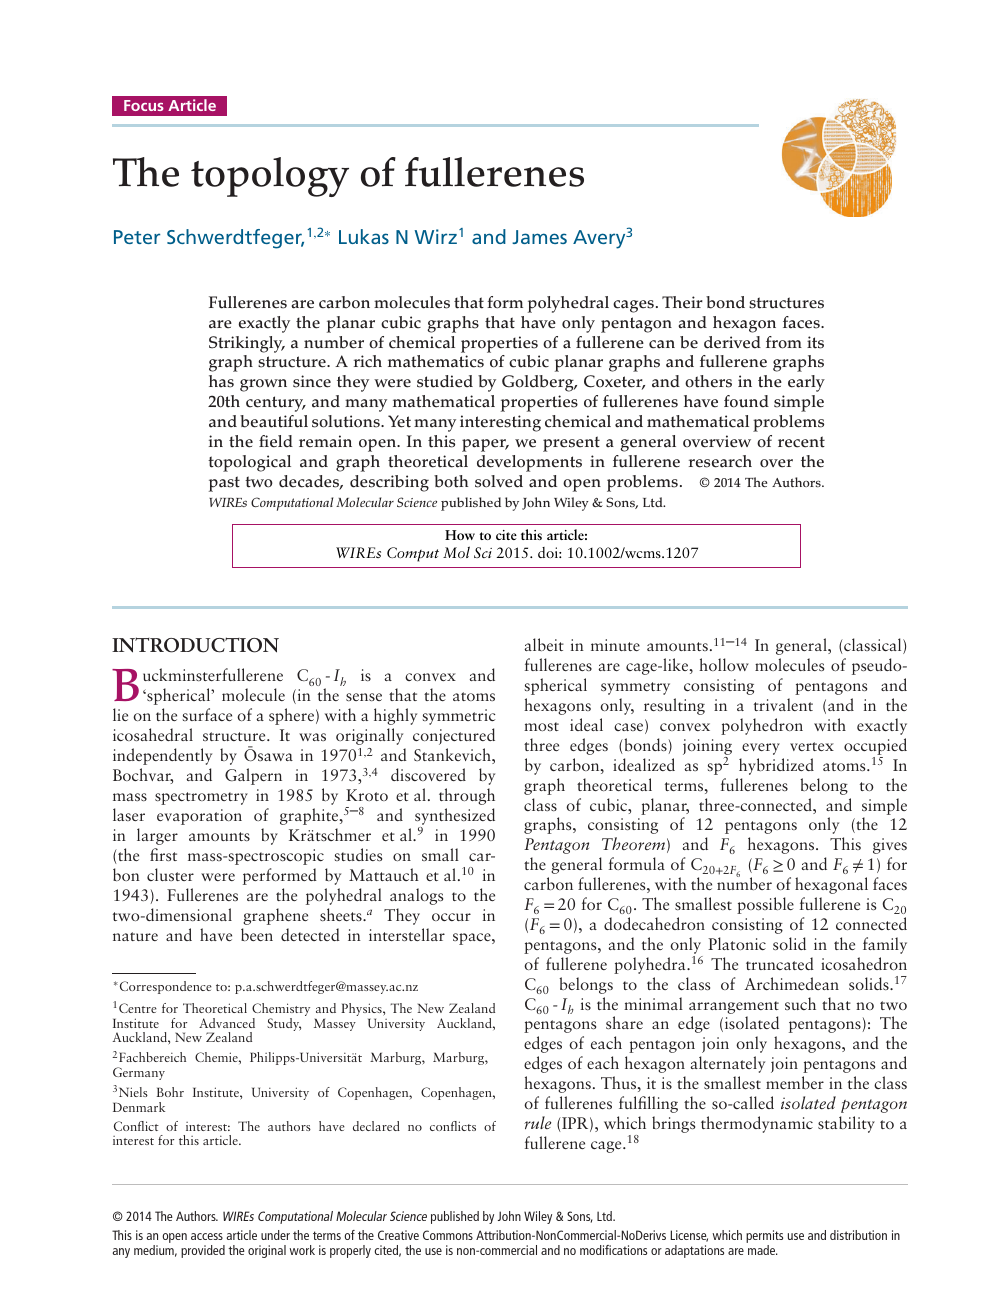 The topology of fullerenes – topic of research paper in Nano ... on